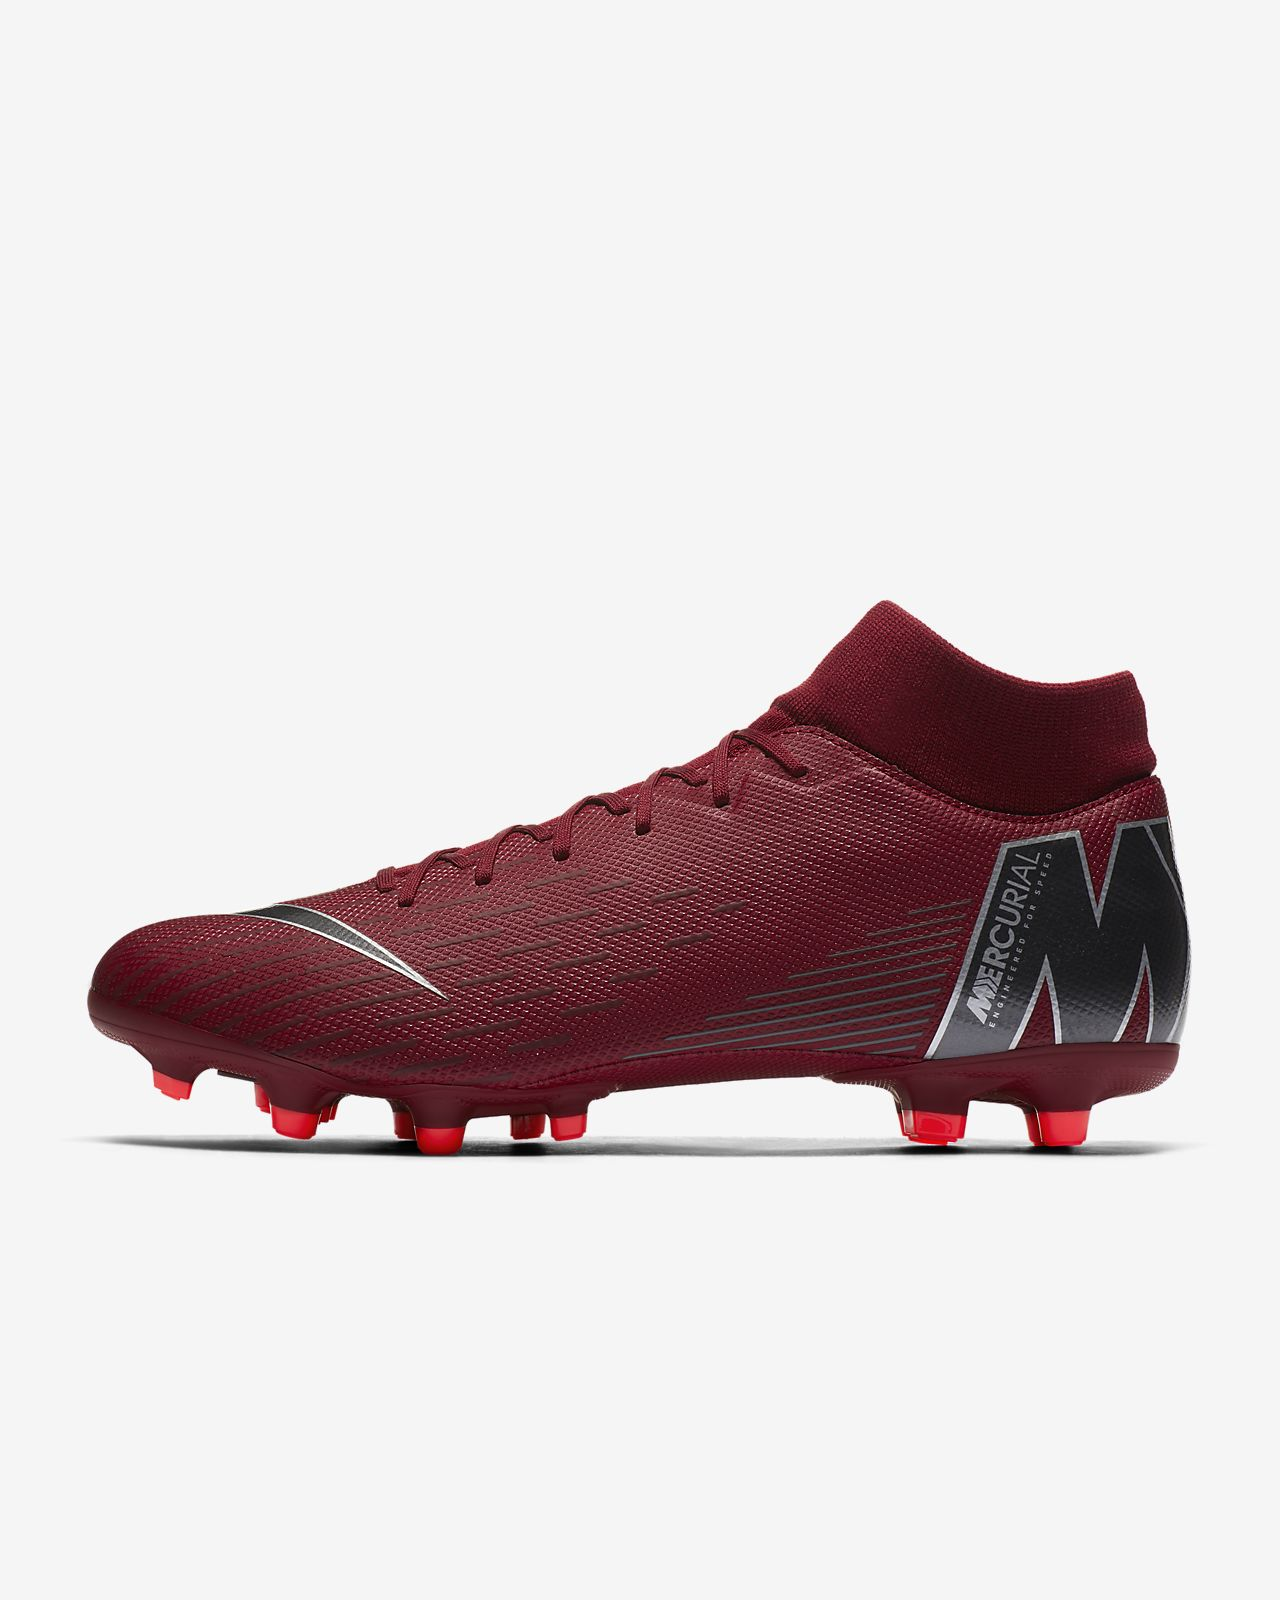 Nike Mercurial Superfly Vi Soccer Academy Mg Multi Ground Soccer Vi Cleat 0bbb15